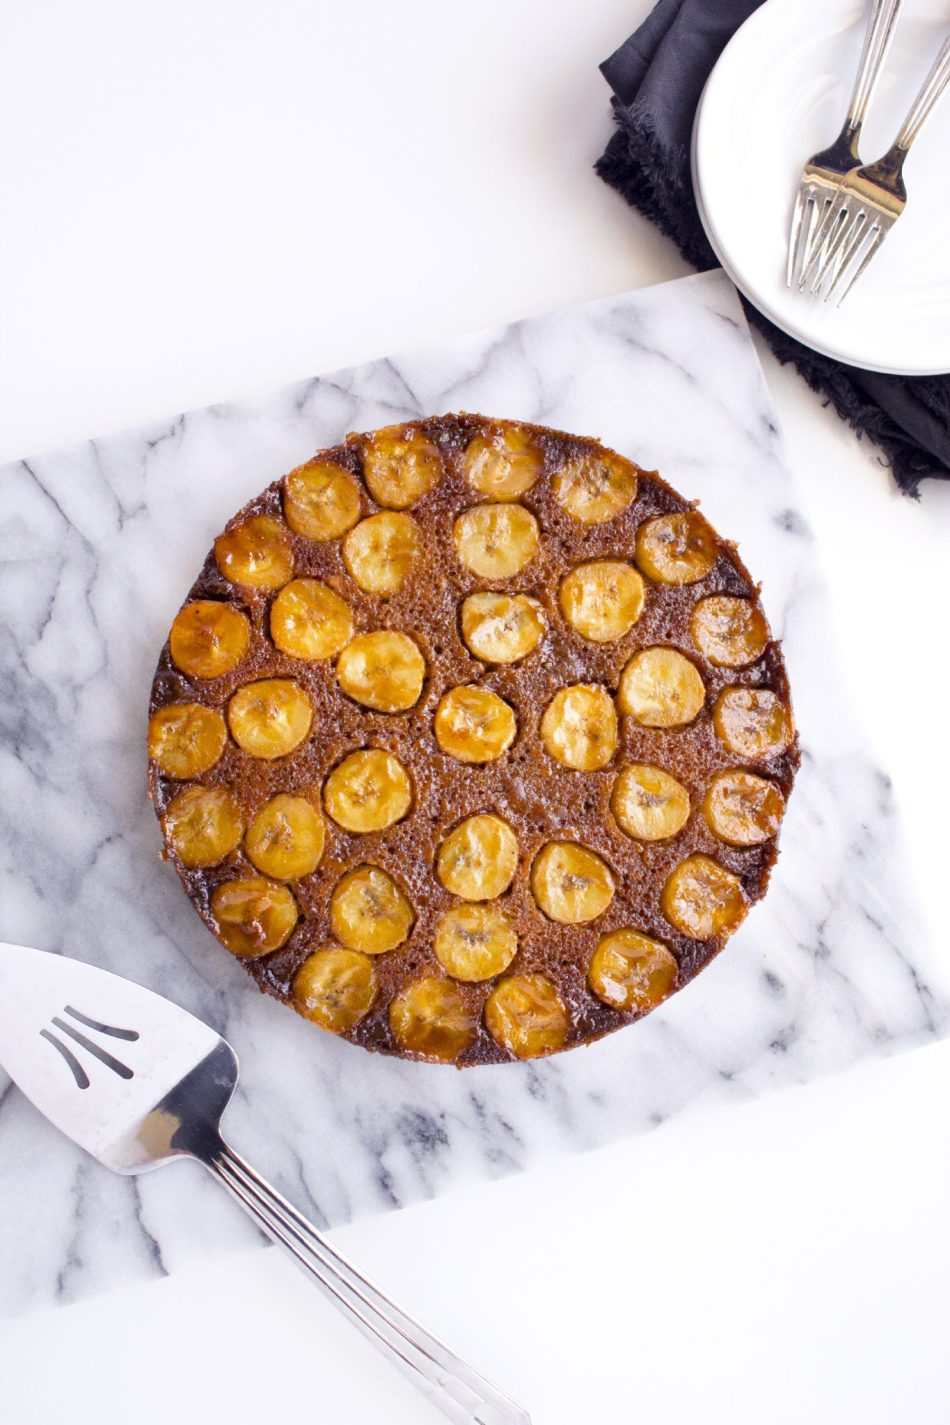 Salted Caramel Banana Upside Down Cake   Refined sugar free and a gluten free variation is also included.